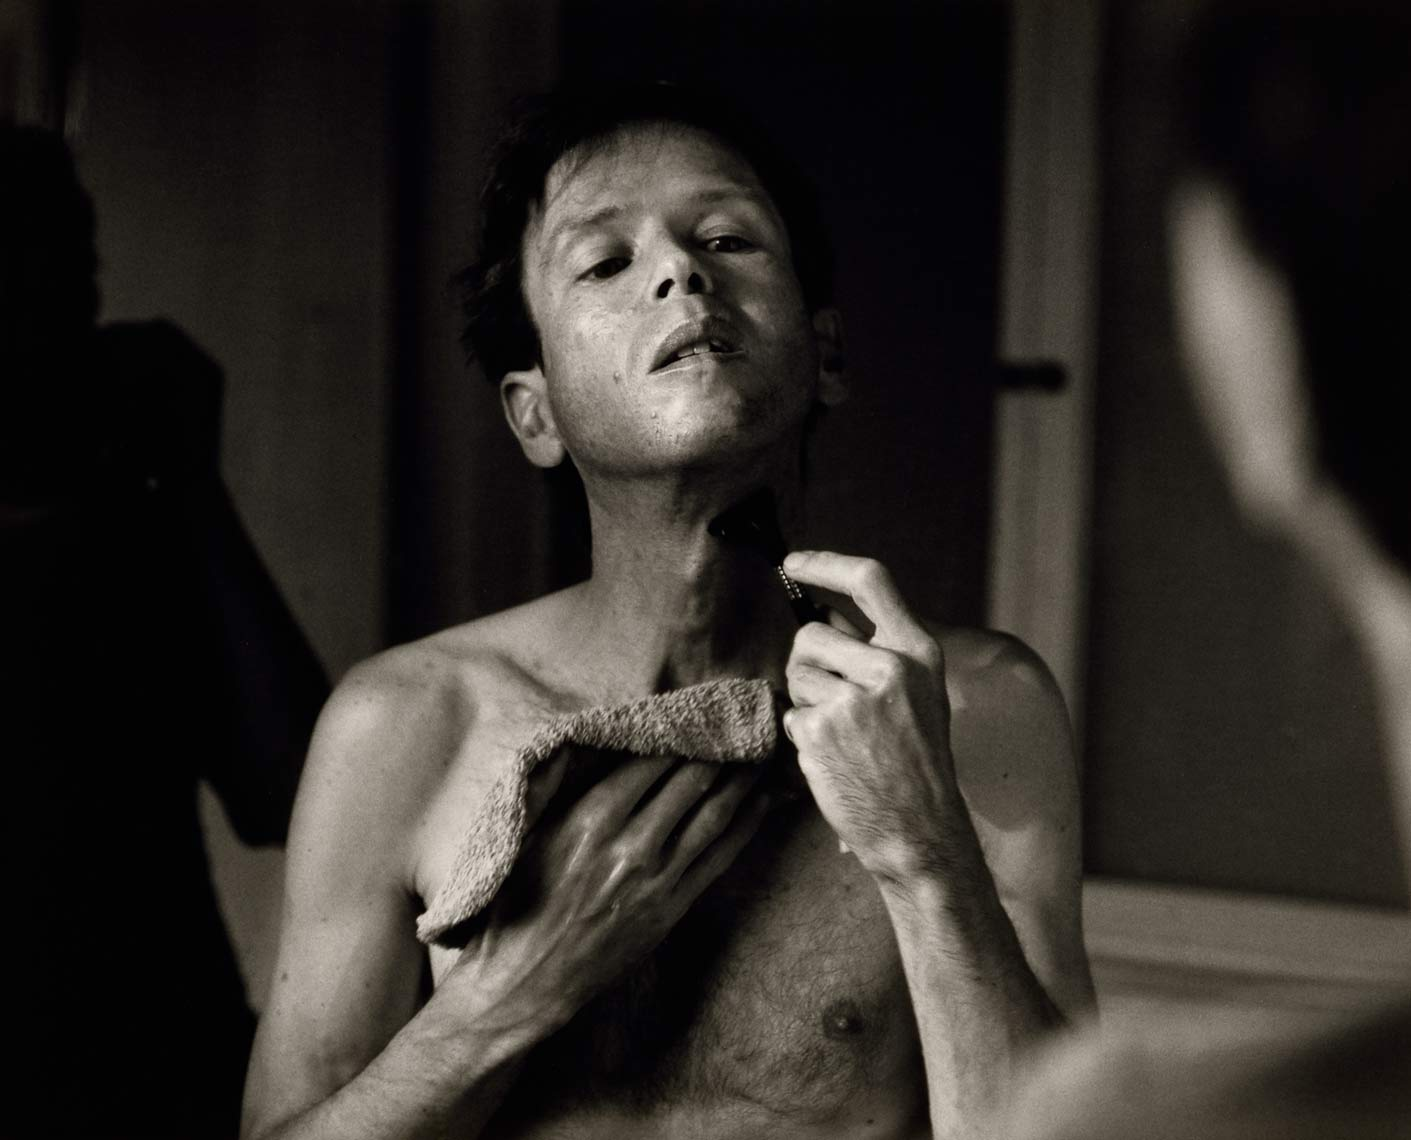 David Lebe; Morning Ritual 12, 1994, black and white photograph about living with AIDS